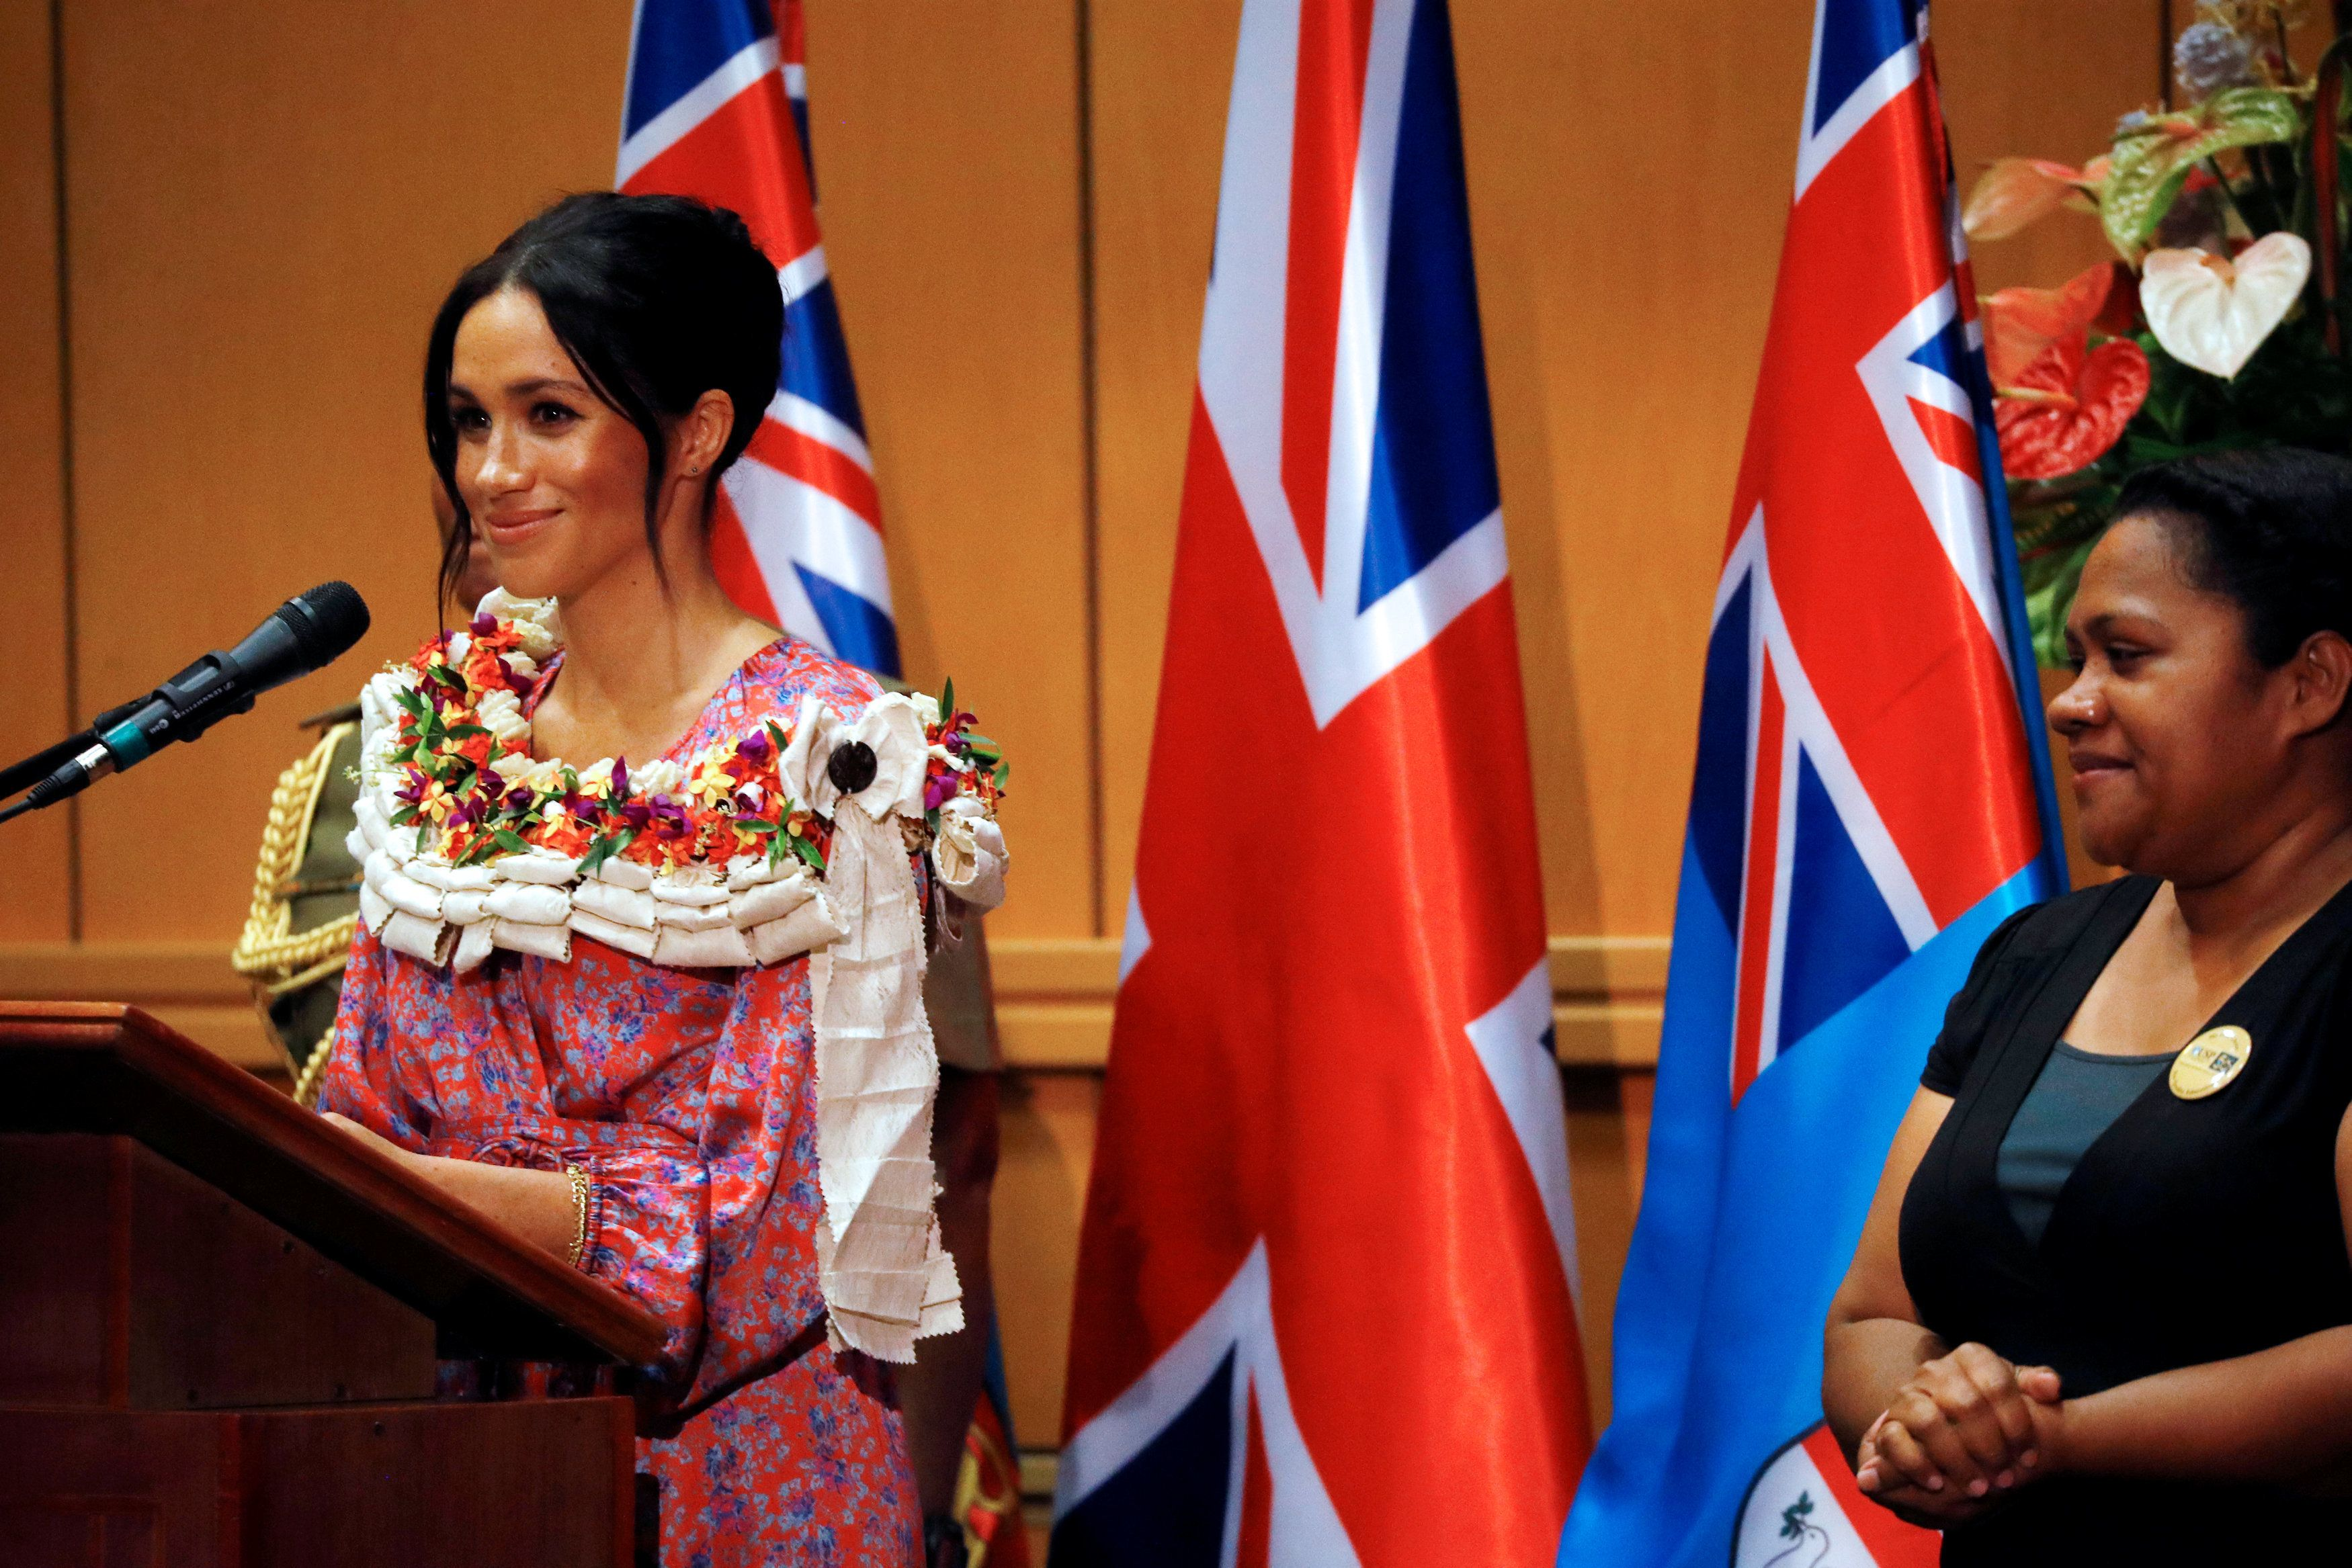 The Duchess of Sussex makes a speech during a visit to the University of the South Pacific in Suva Fiji on day two of the